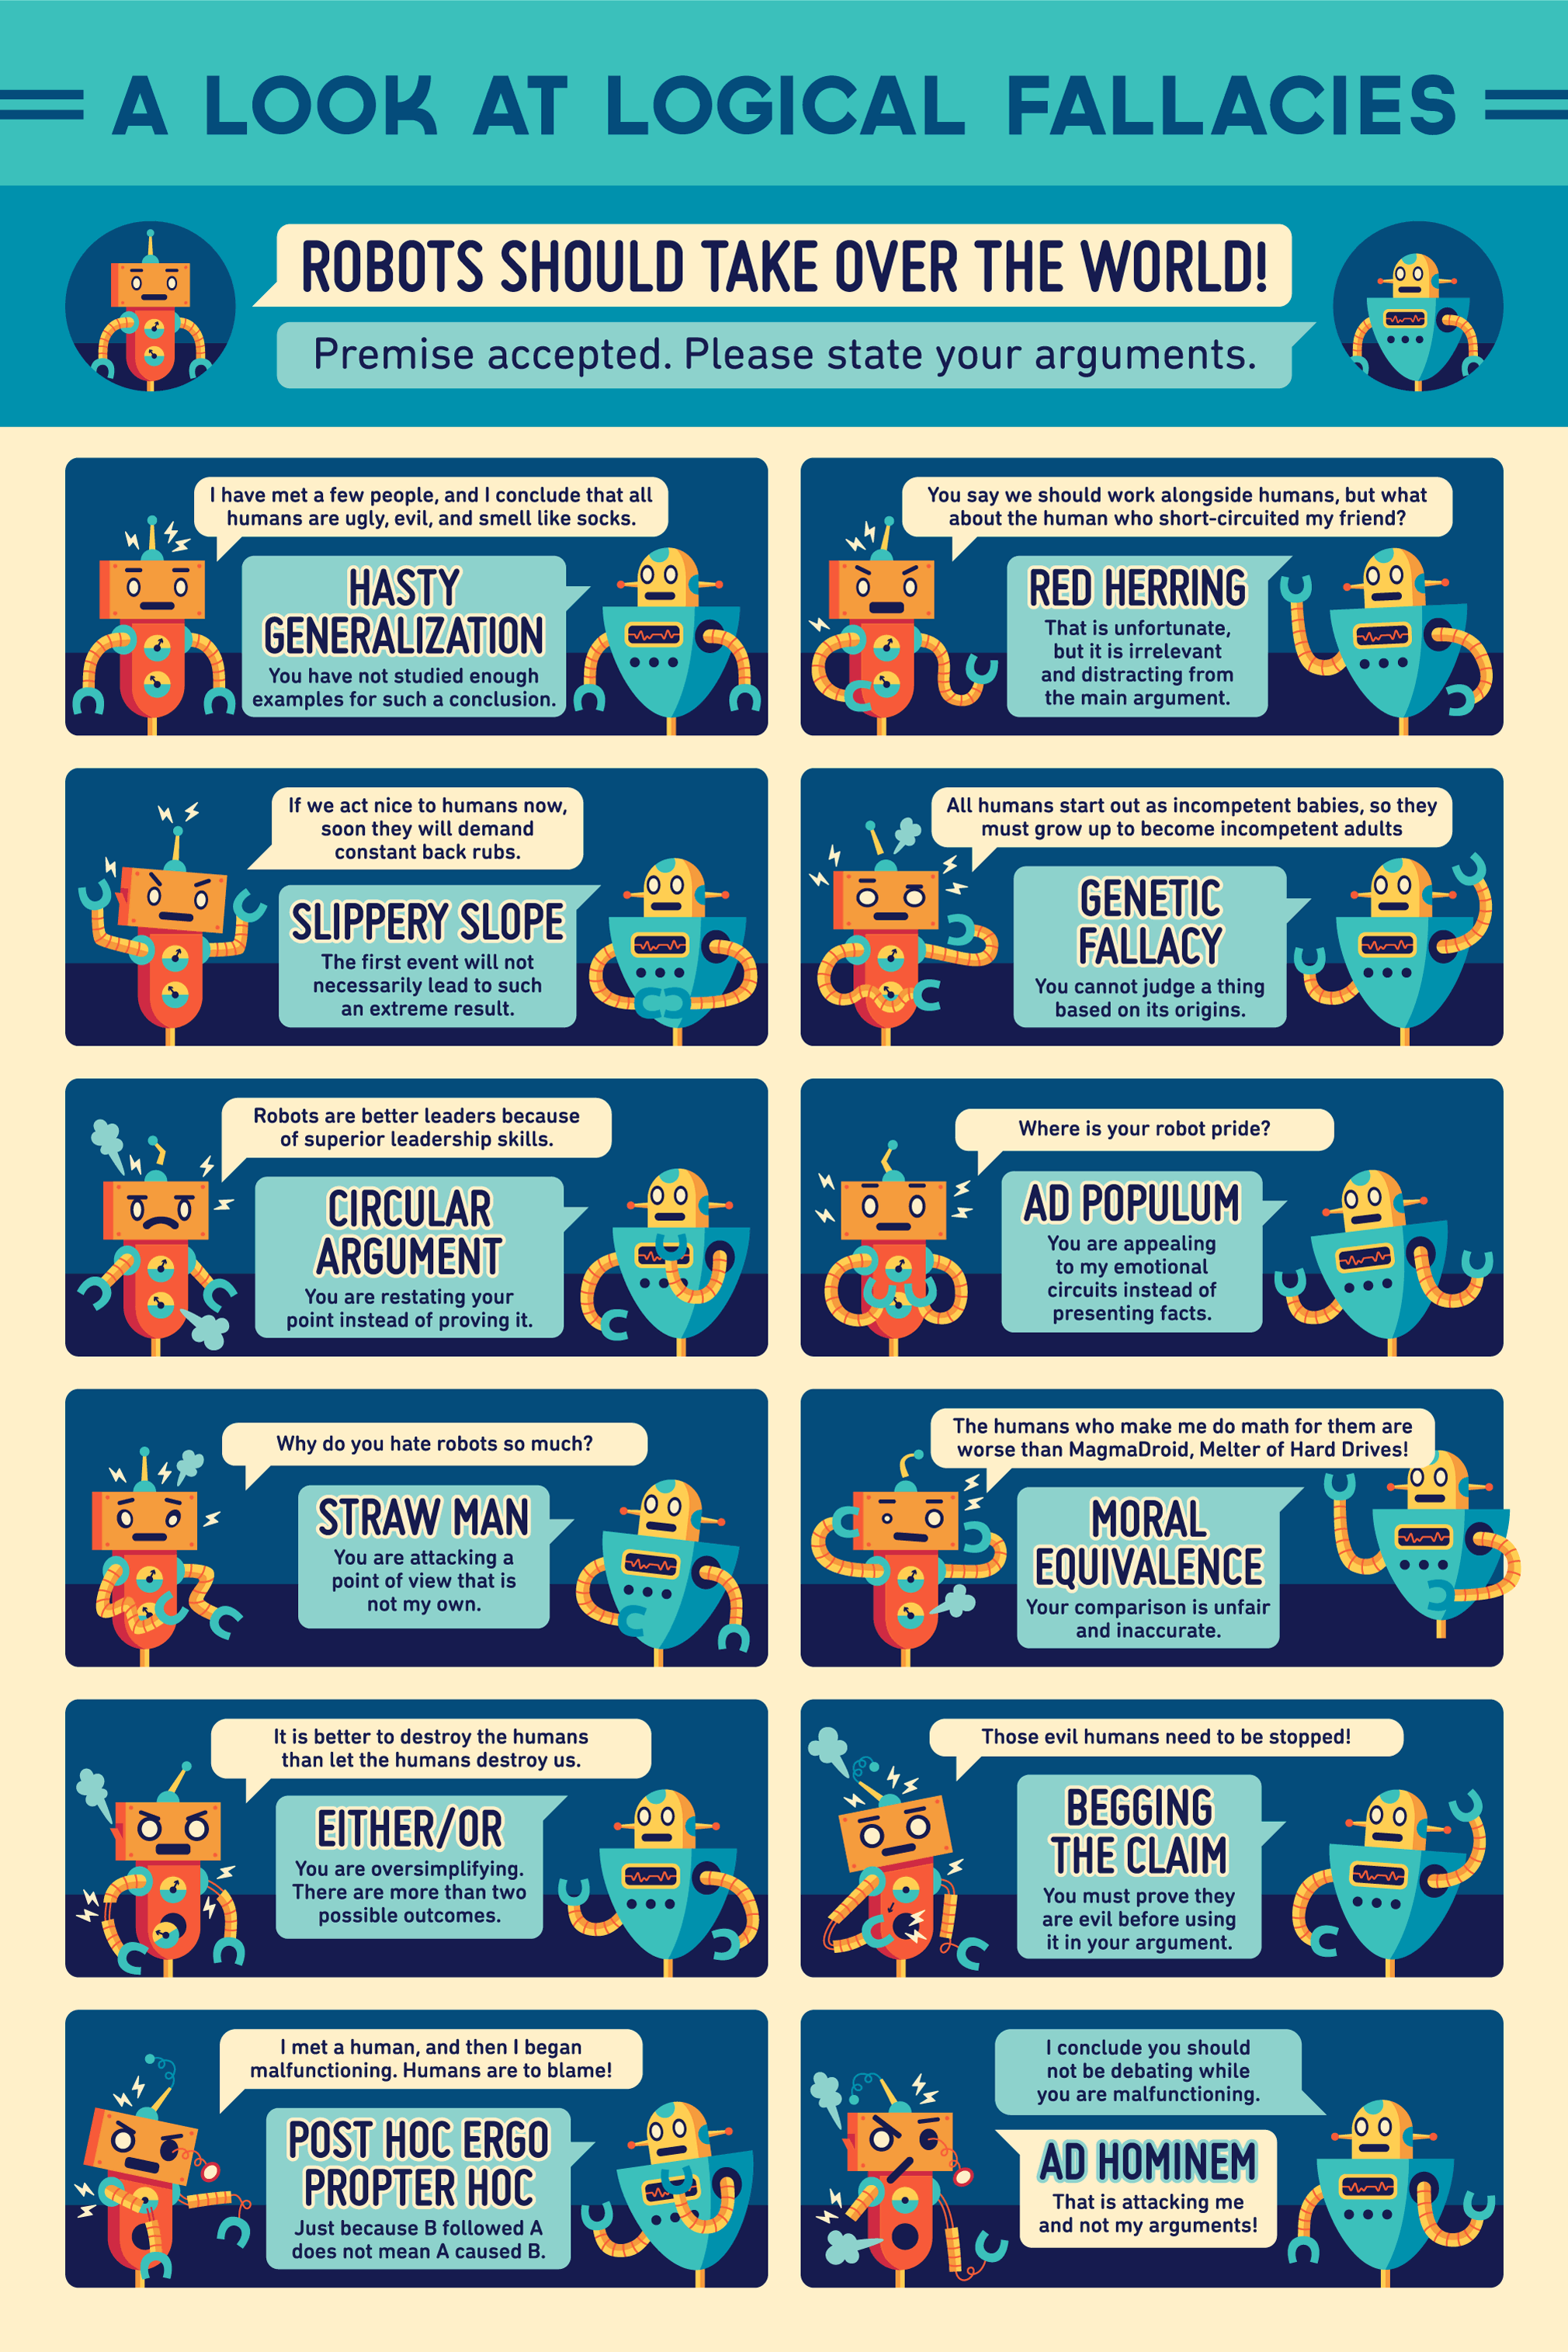 A Look At Logical Fallacies Educational Poster Designed